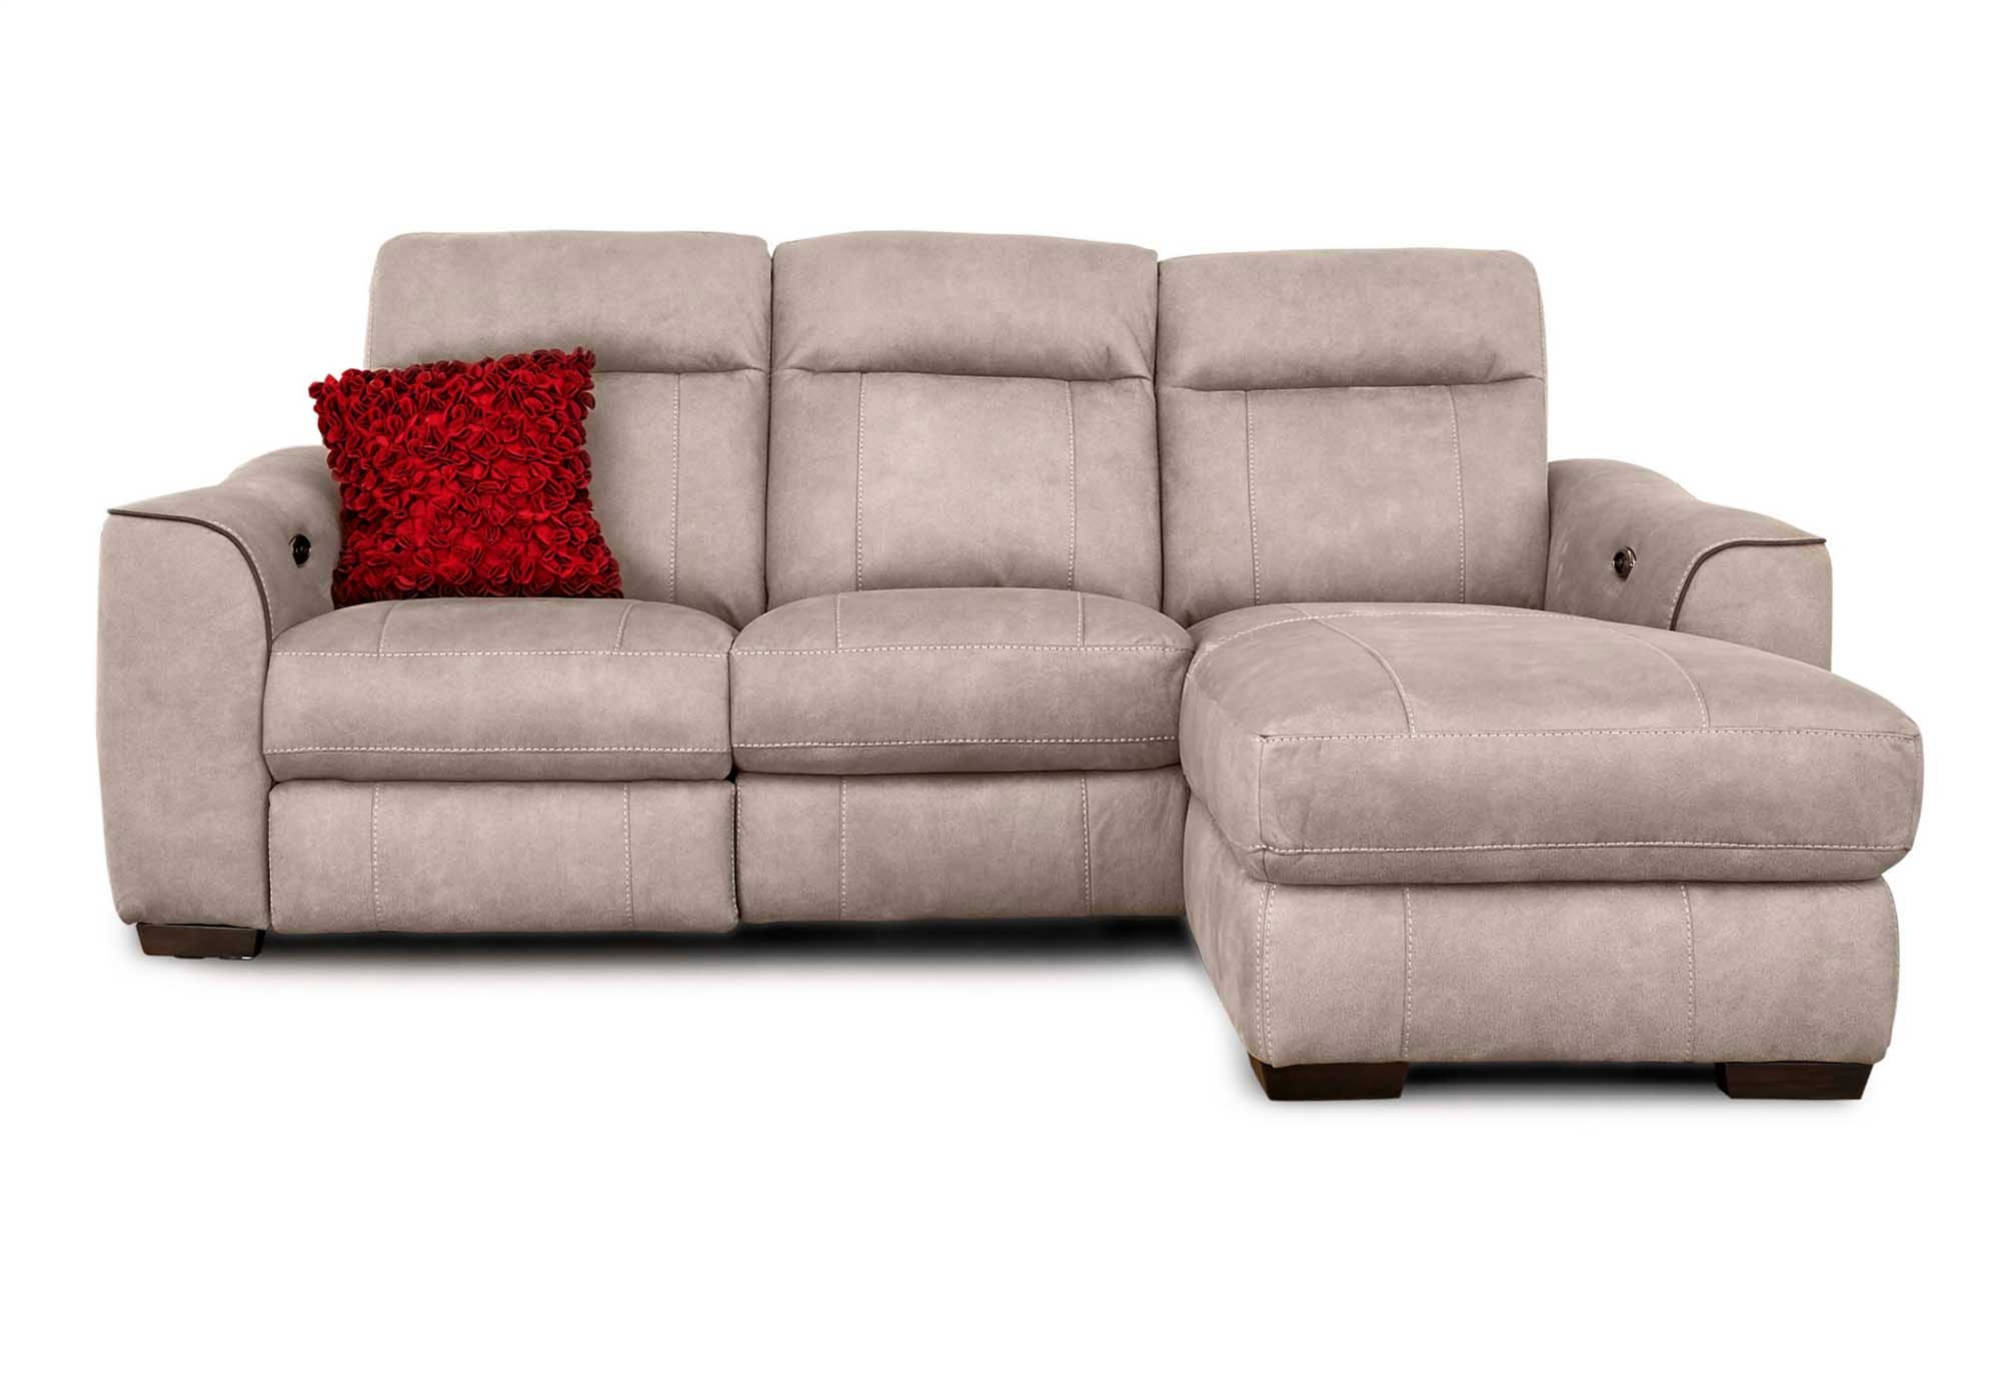 Best htl furniture reviews homesfeed Red and grey sofa